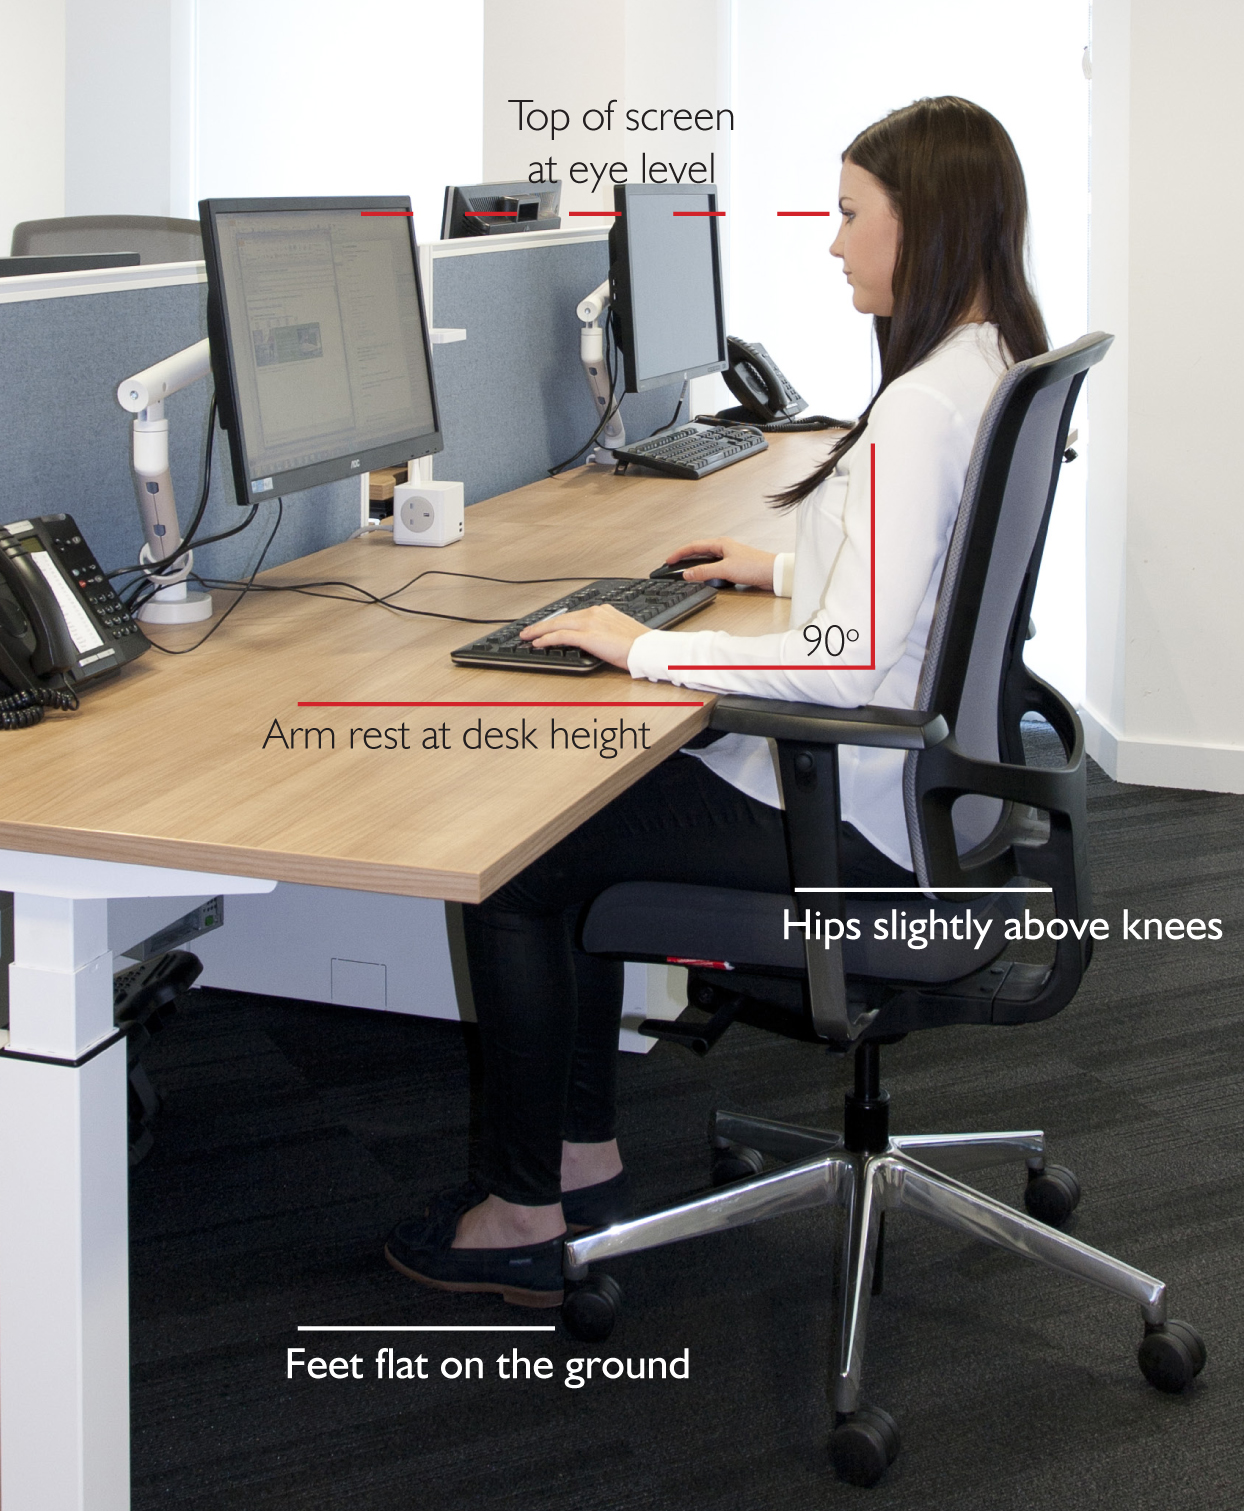 6 Tips for sitting at your computer – LSE Treatment Clinic